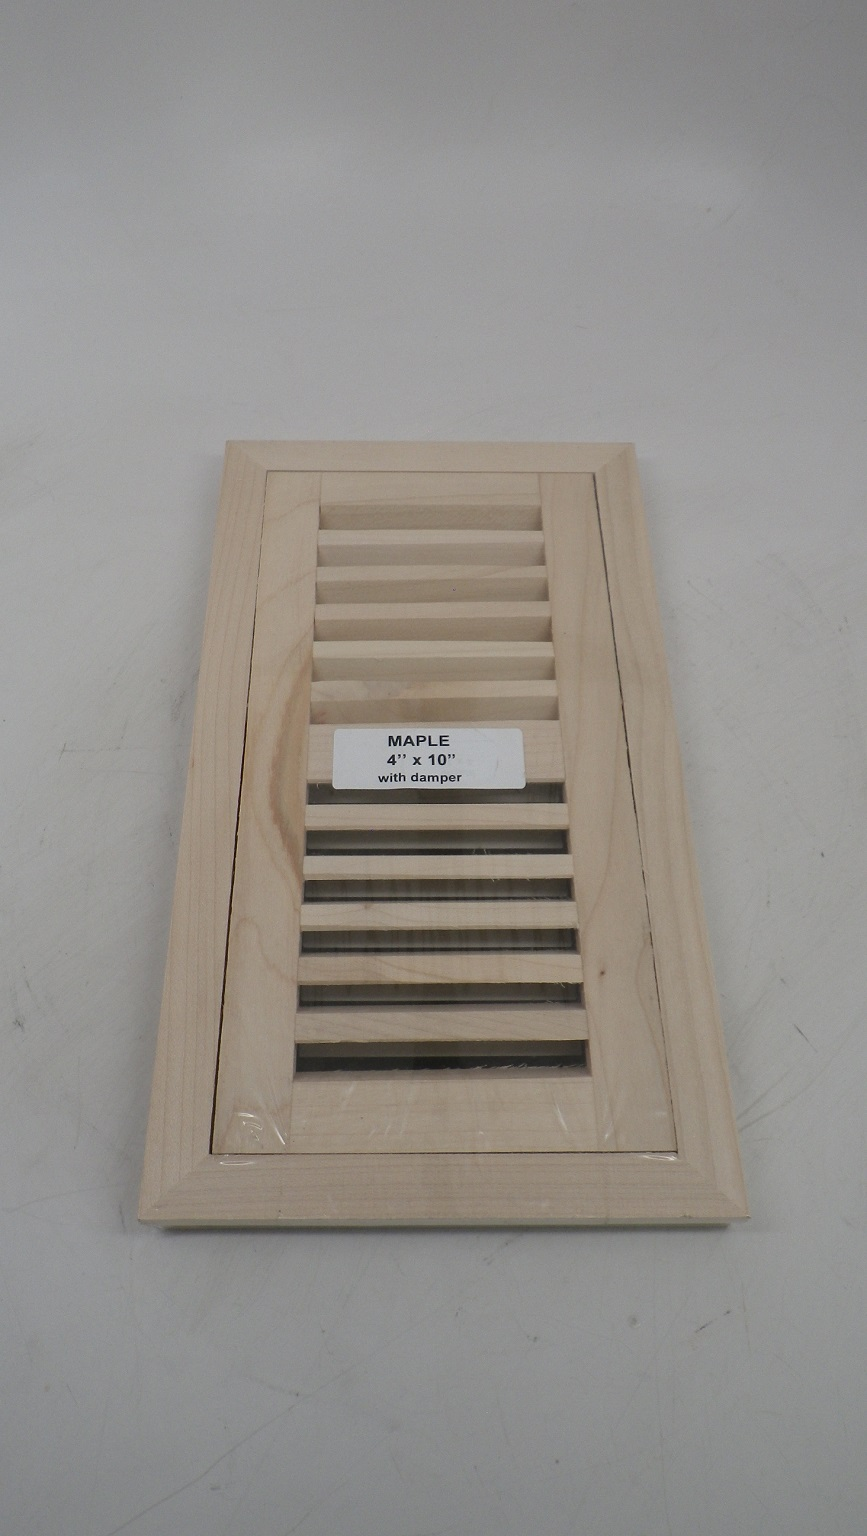 Floor Heat Vents And Registers By Manufacturer